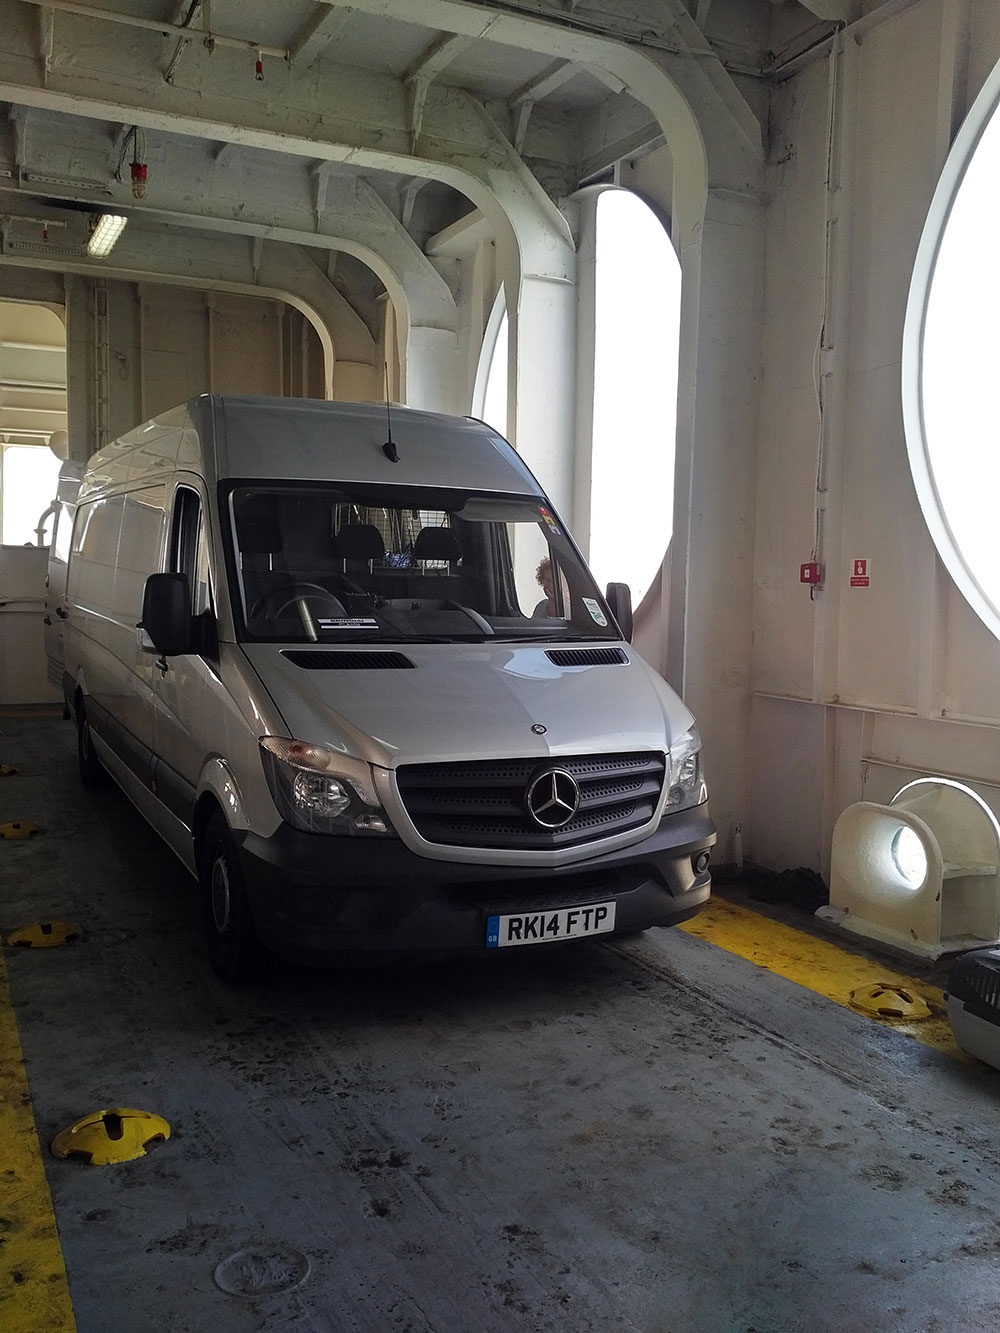 On board the ferry we had a special parking area with no other vehicles around the van. Large portholes provided excellent ventilation to keep the pets comfortable, and we could visit them throughout the crossing.